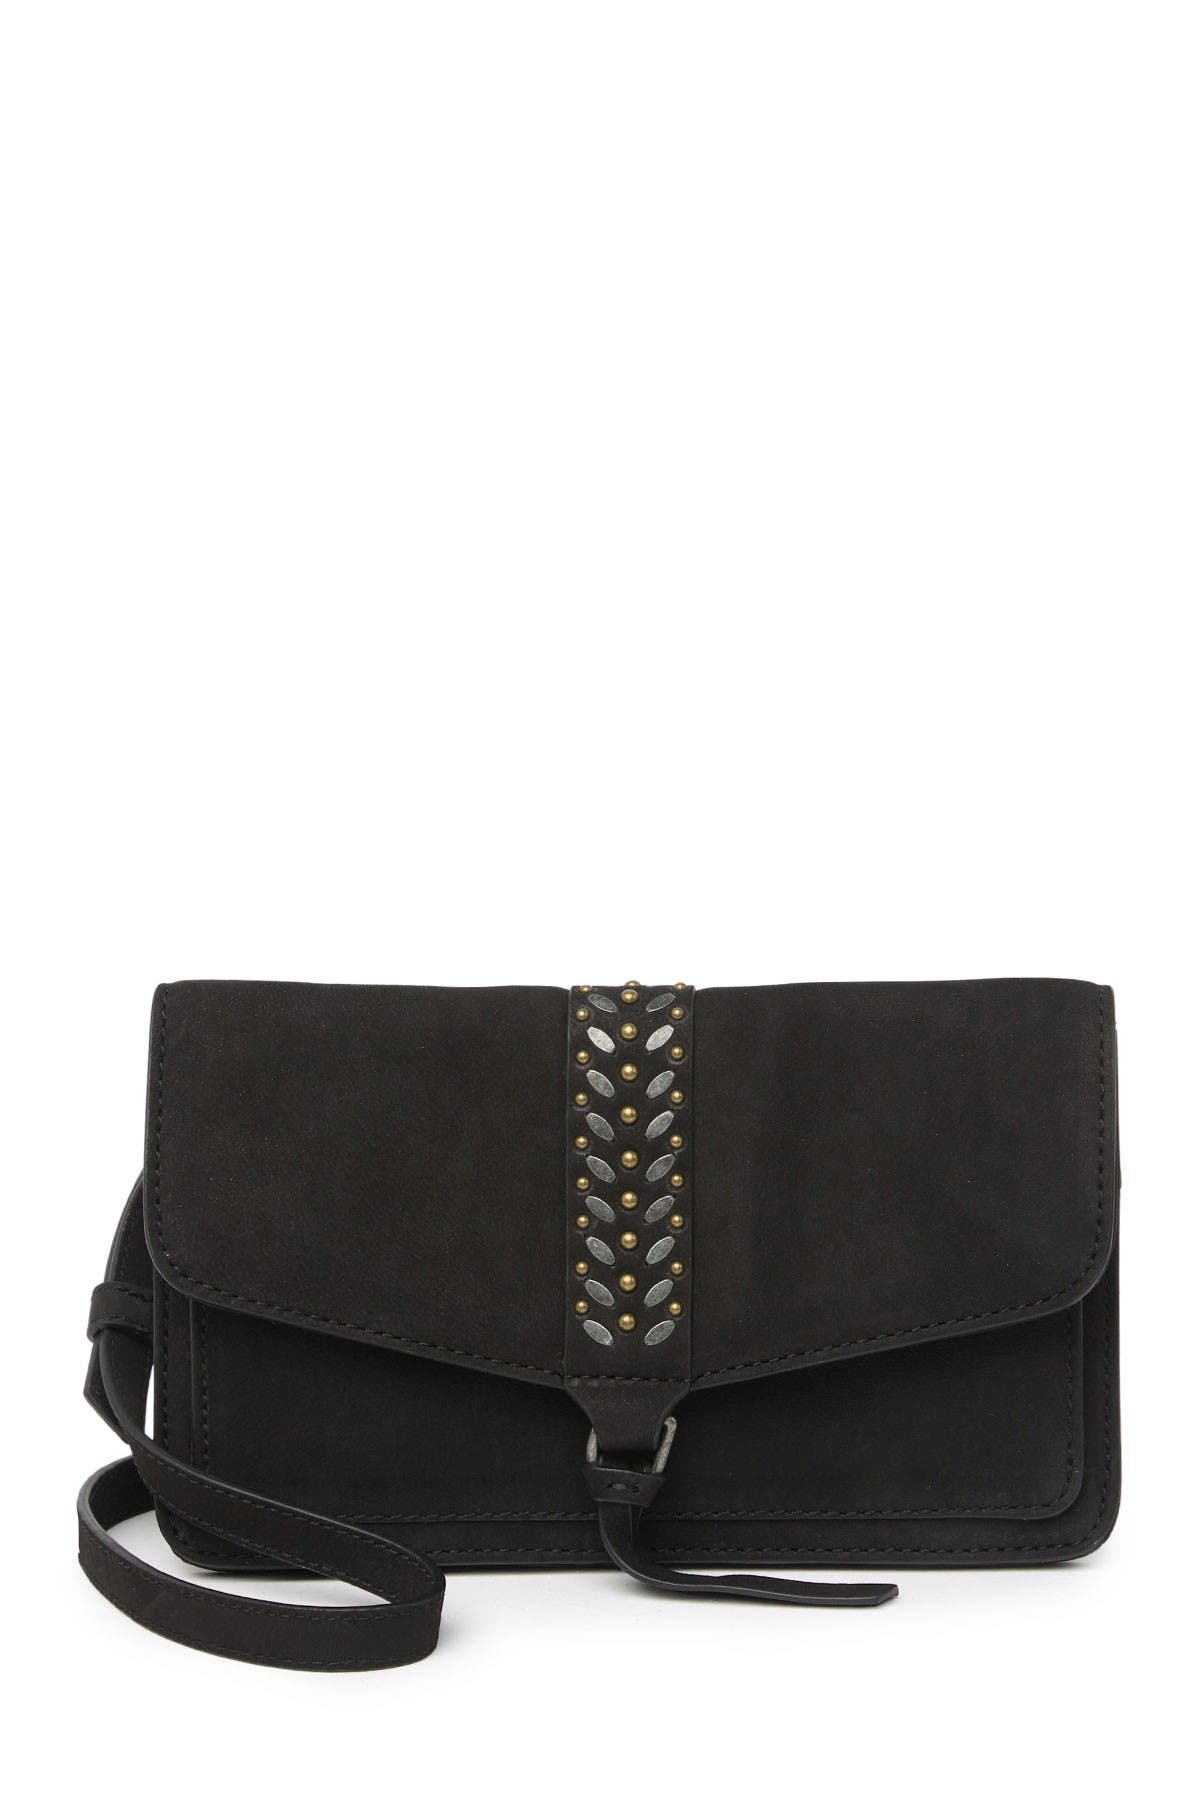 Image of Lucky Brand Sher Small Crossbody